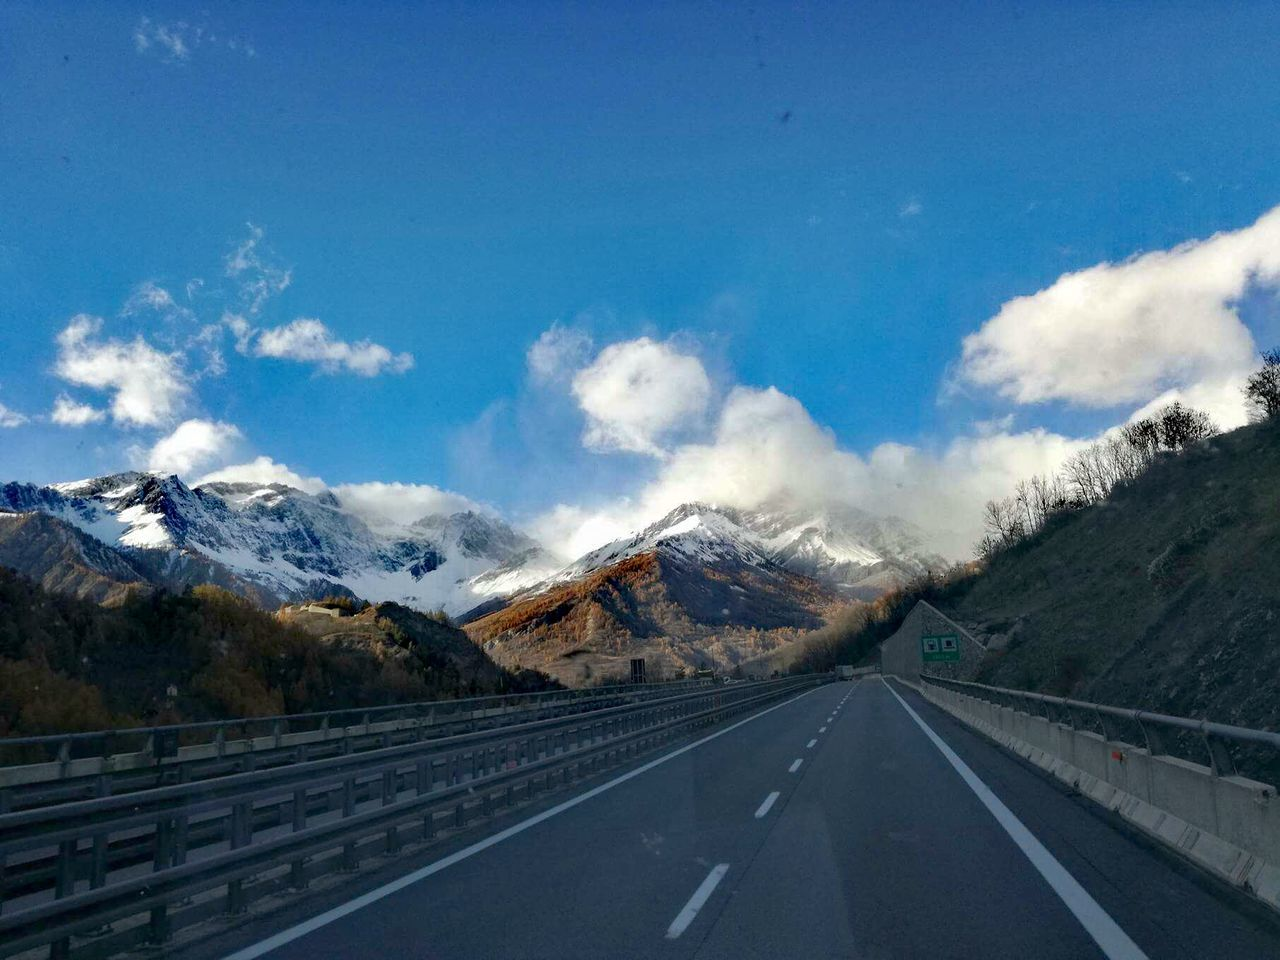 Road Snow Mountain Range Mountain No People Cloud - Sky Cold Temperature Sky Day My Year My View Best EyeEm Shot Tha Great Outdoors With Adobe Huawei P9 Leica HuaweiP9 EyeEm Best Shots EyeEmBestPics Outdoors The Way Forward Truck Finding New Frontiers Adapted To The City Betterlandscapes Let's Go. Together.